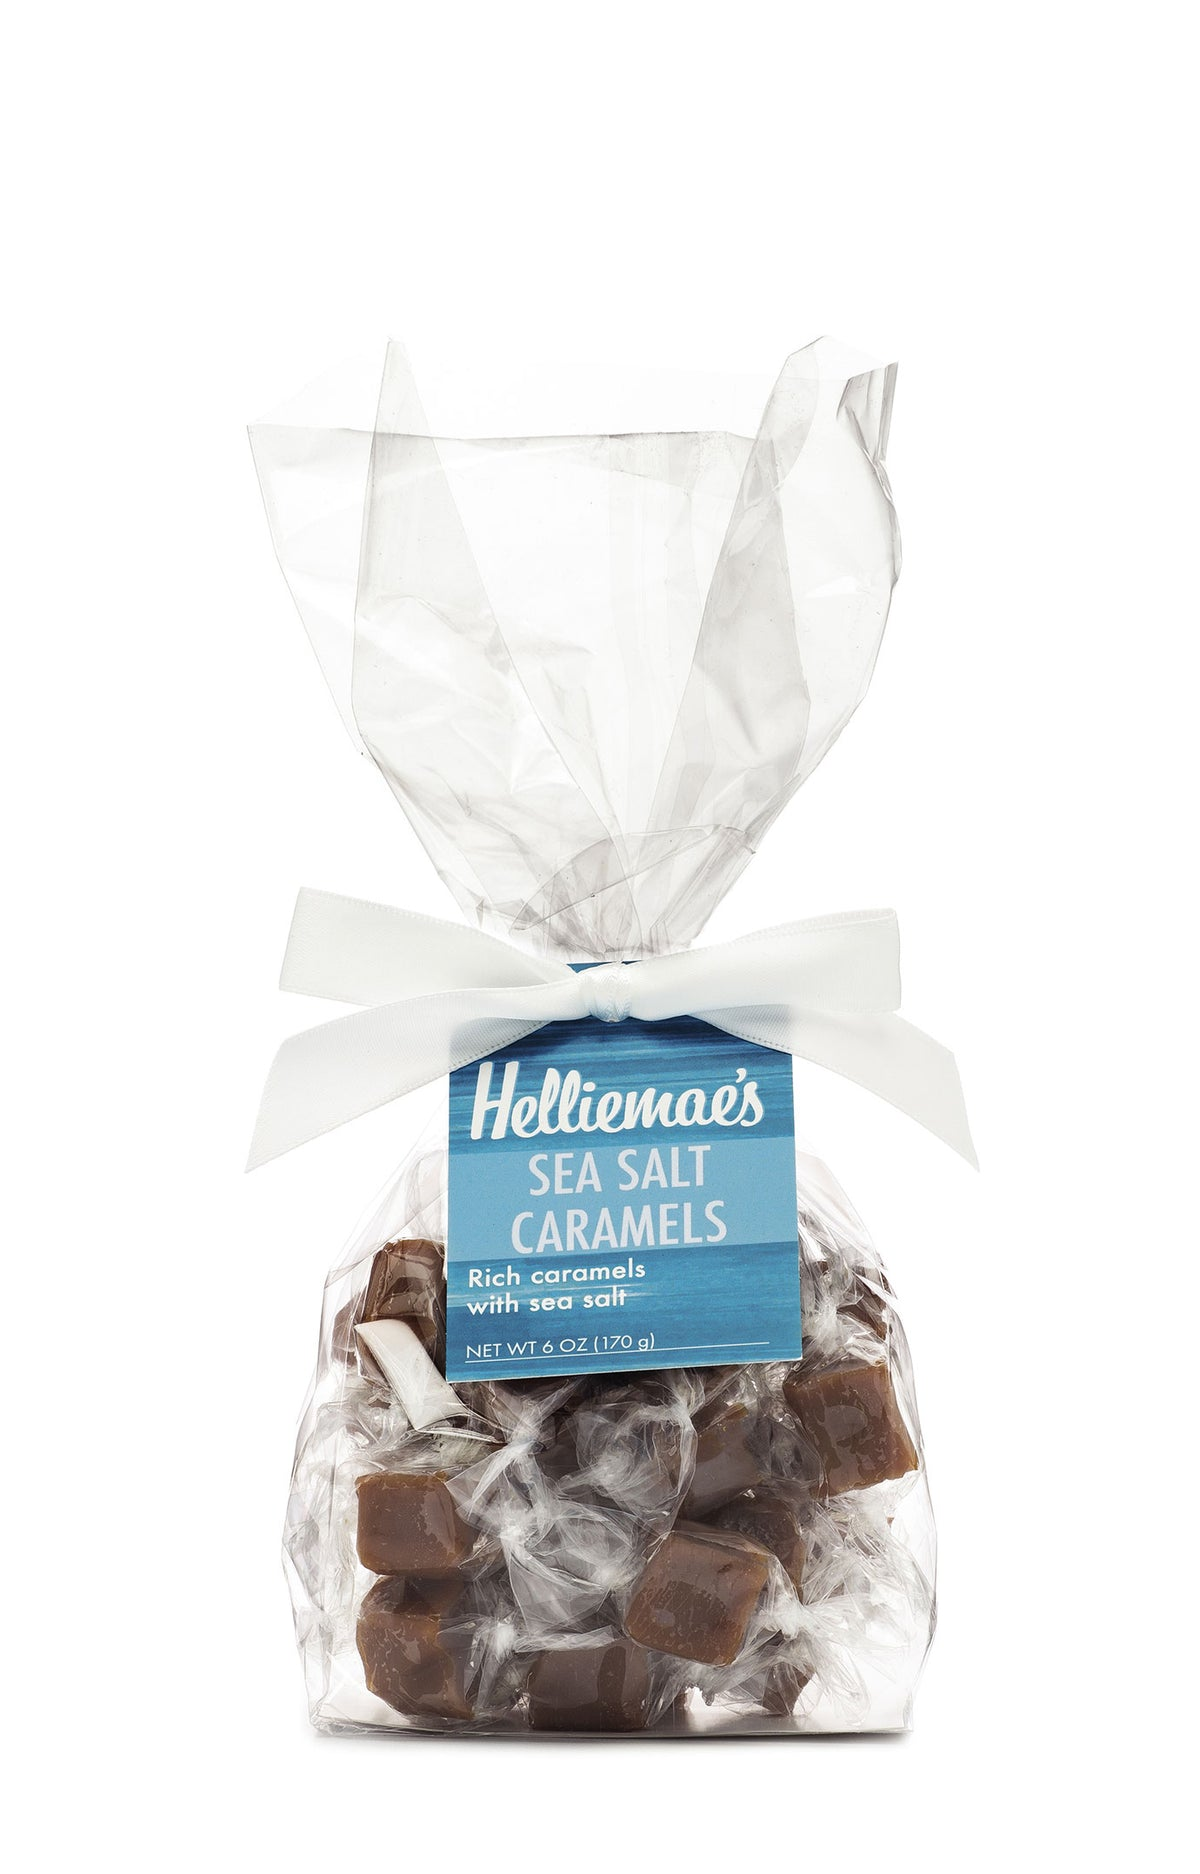 Helliemae's Sea Salt Caramels medium gift bag, clear cello bag with gathered top, fastened with white satin ribbon and colorful blue hangtag, with effect of milk paint on a barn wall.